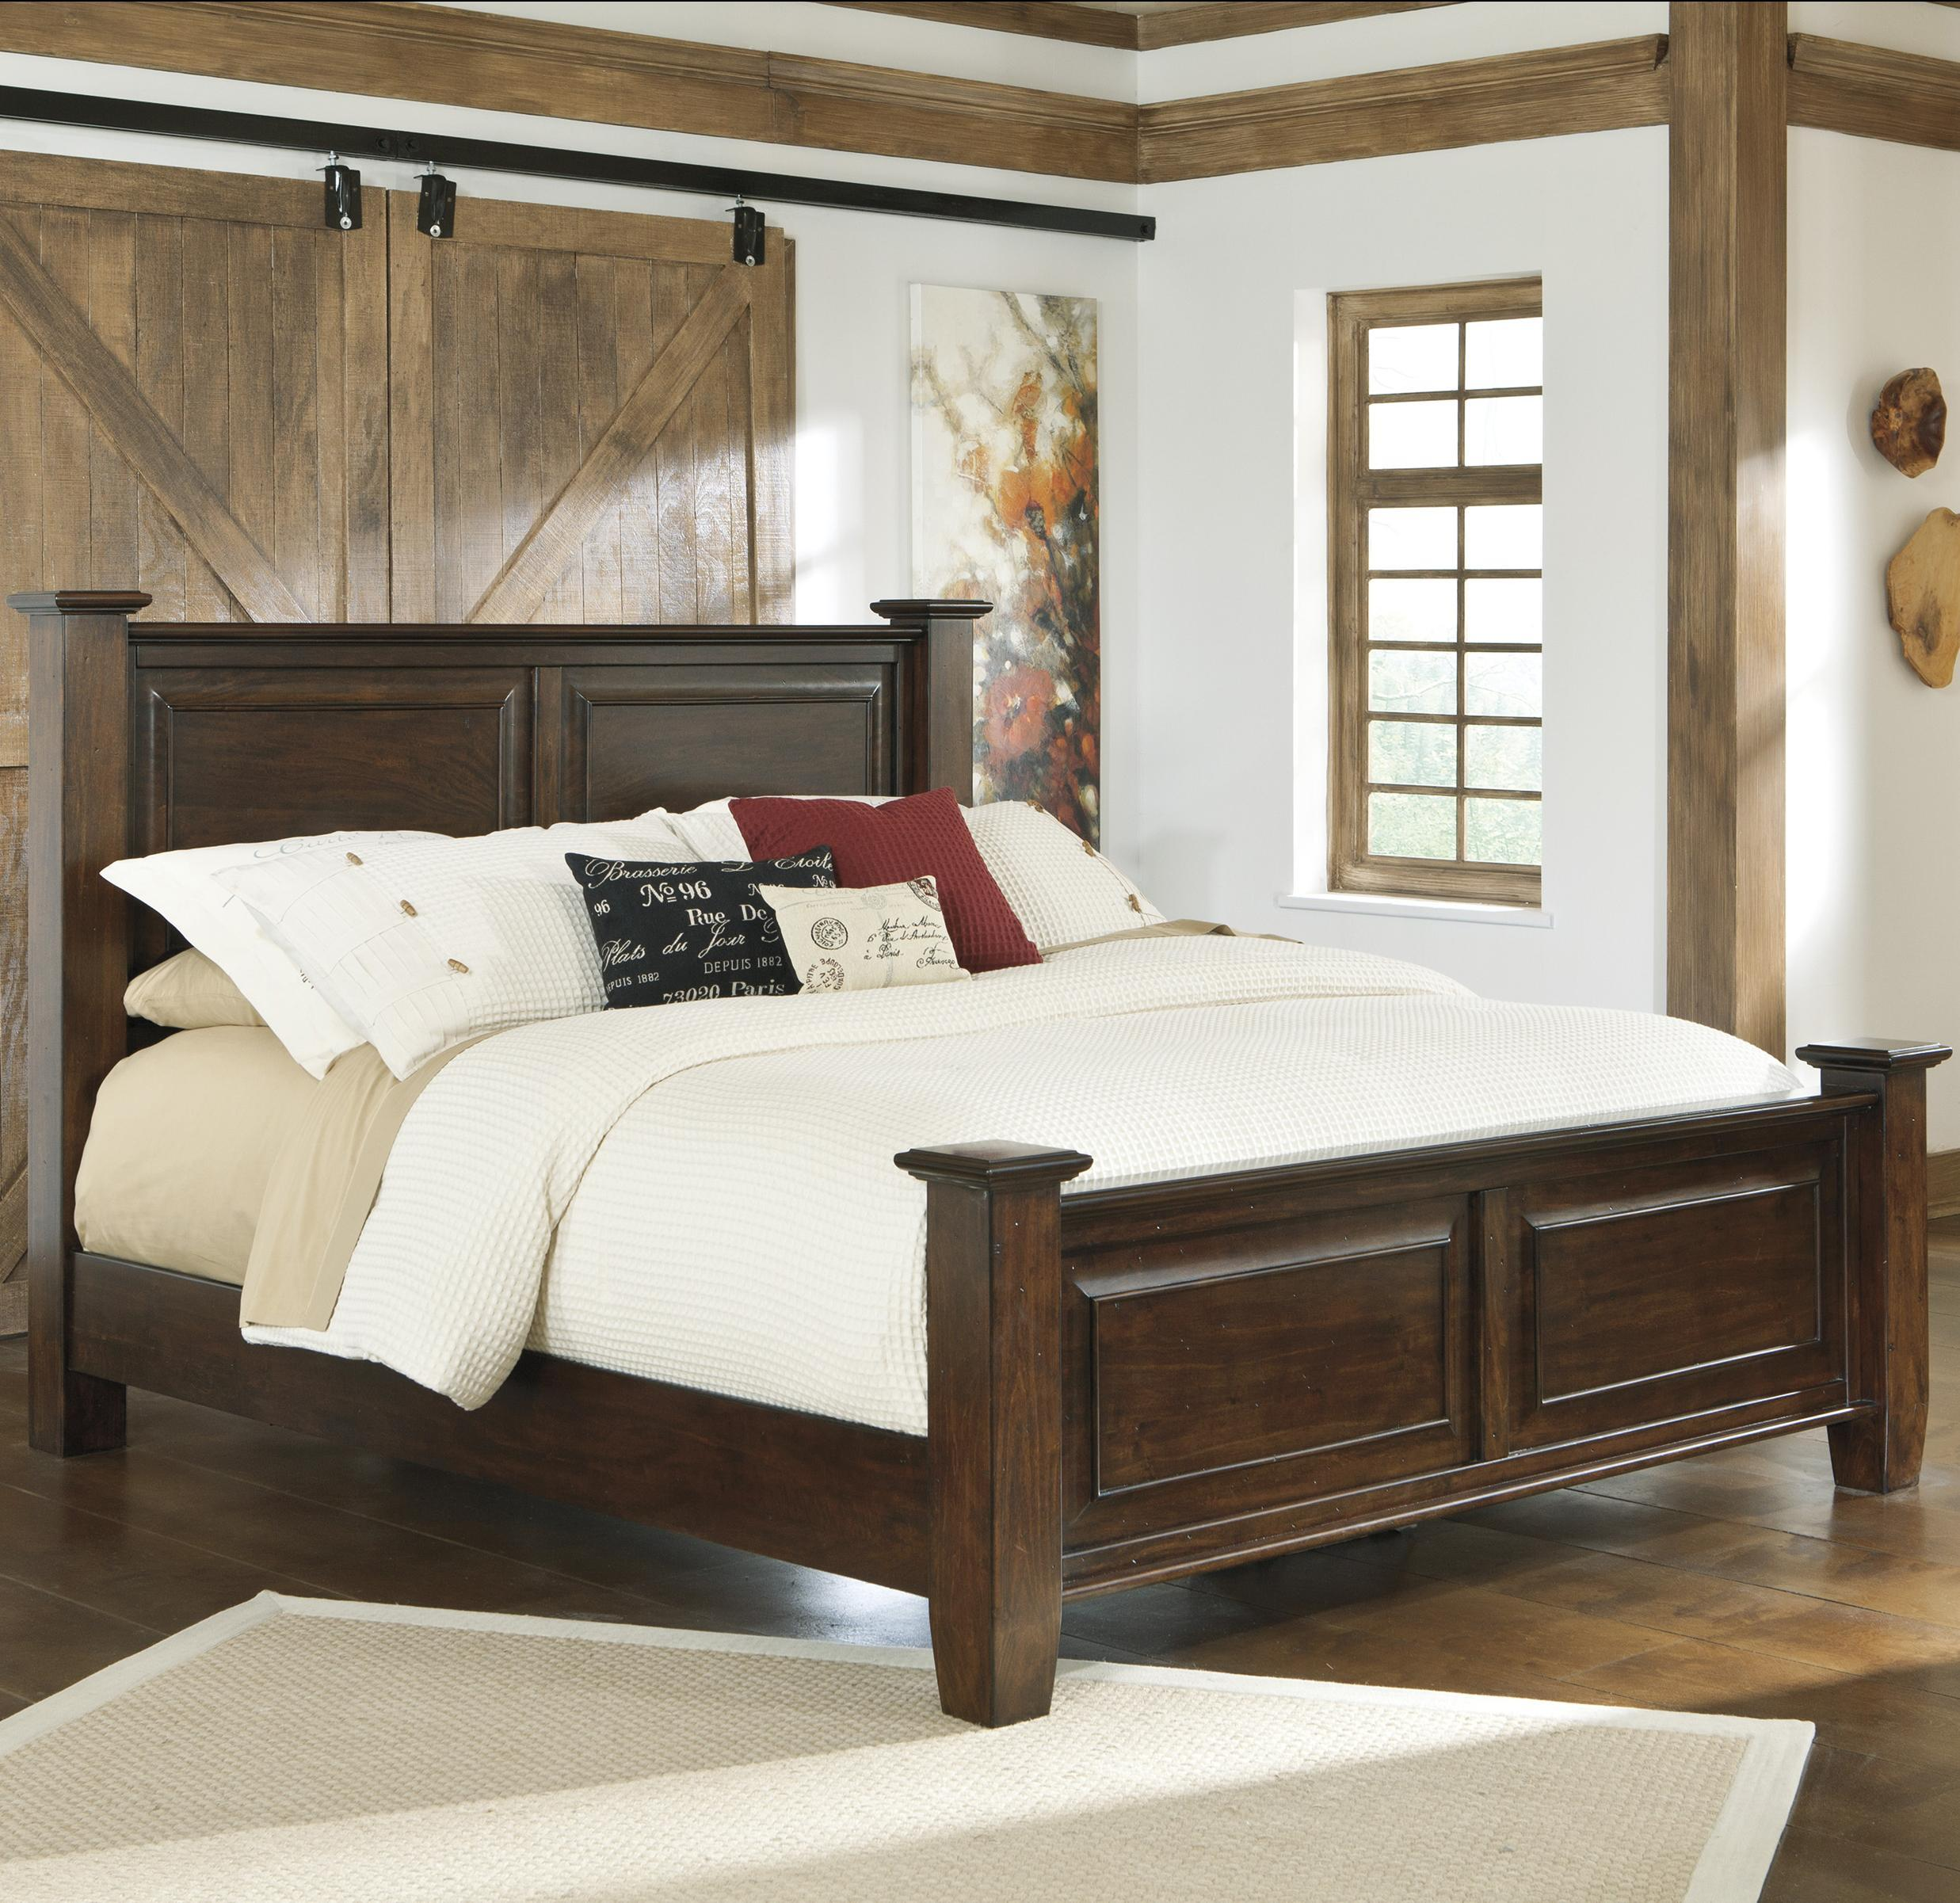 Millennium Bedroom Furniture Mattiner Bedroom Set Millennium